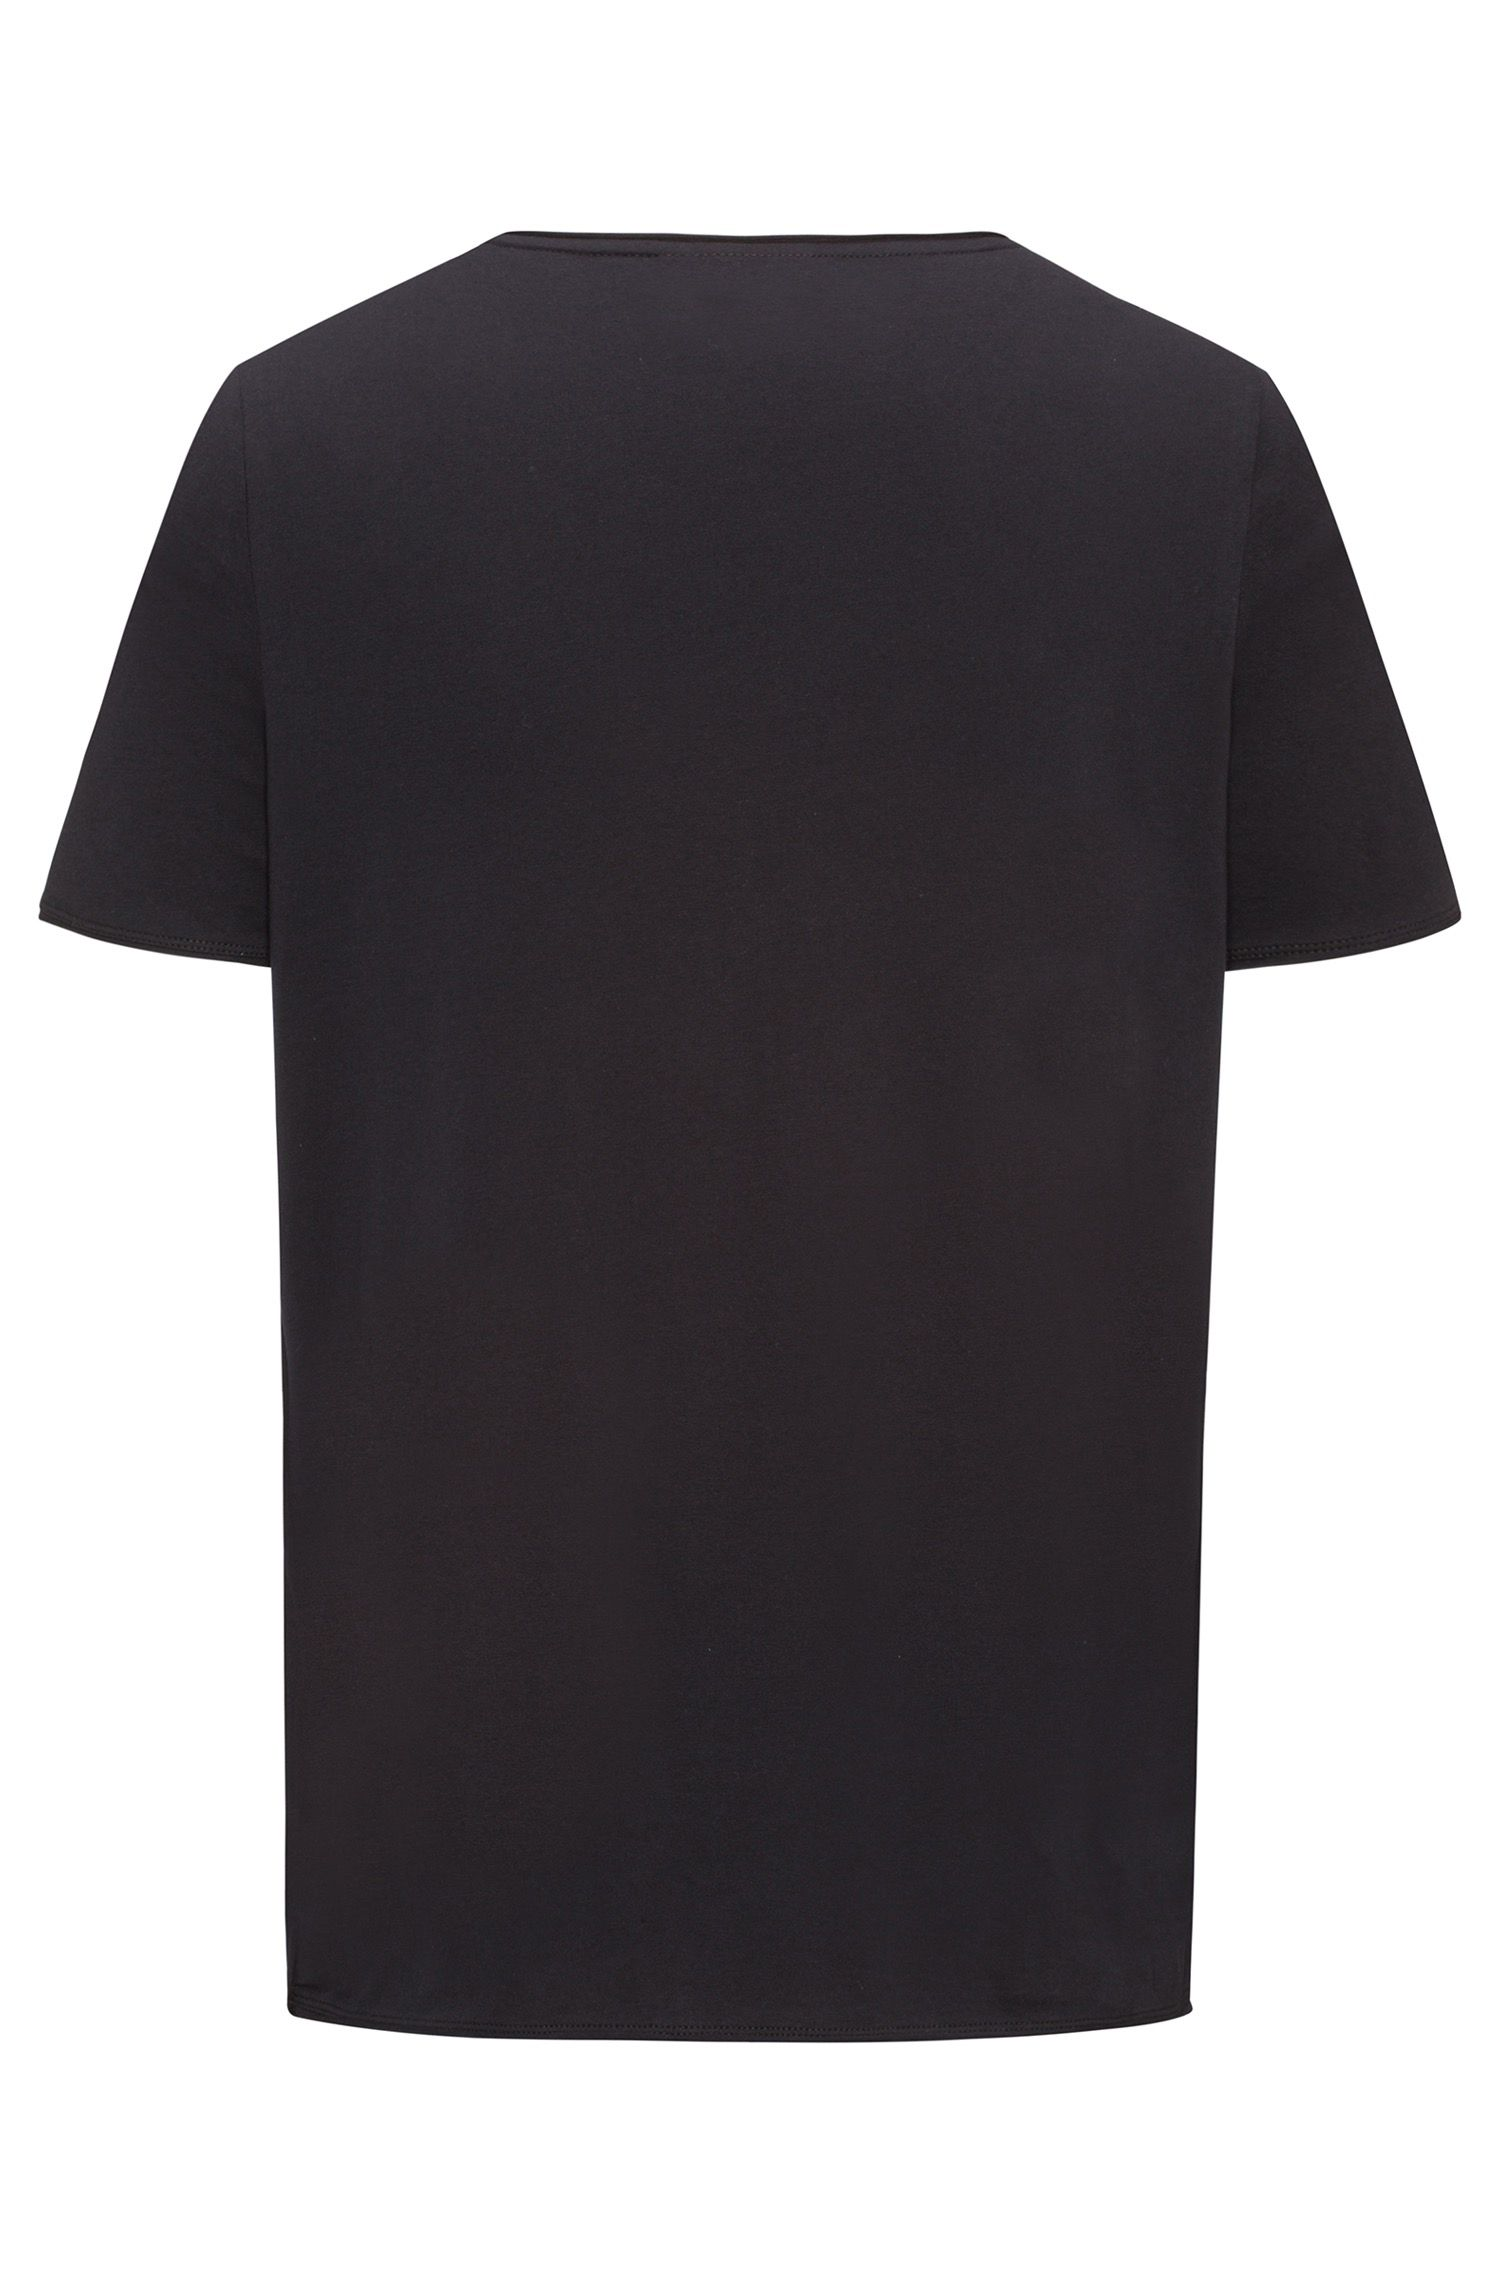 Camiseta regular fit en algodón Pima, Negro